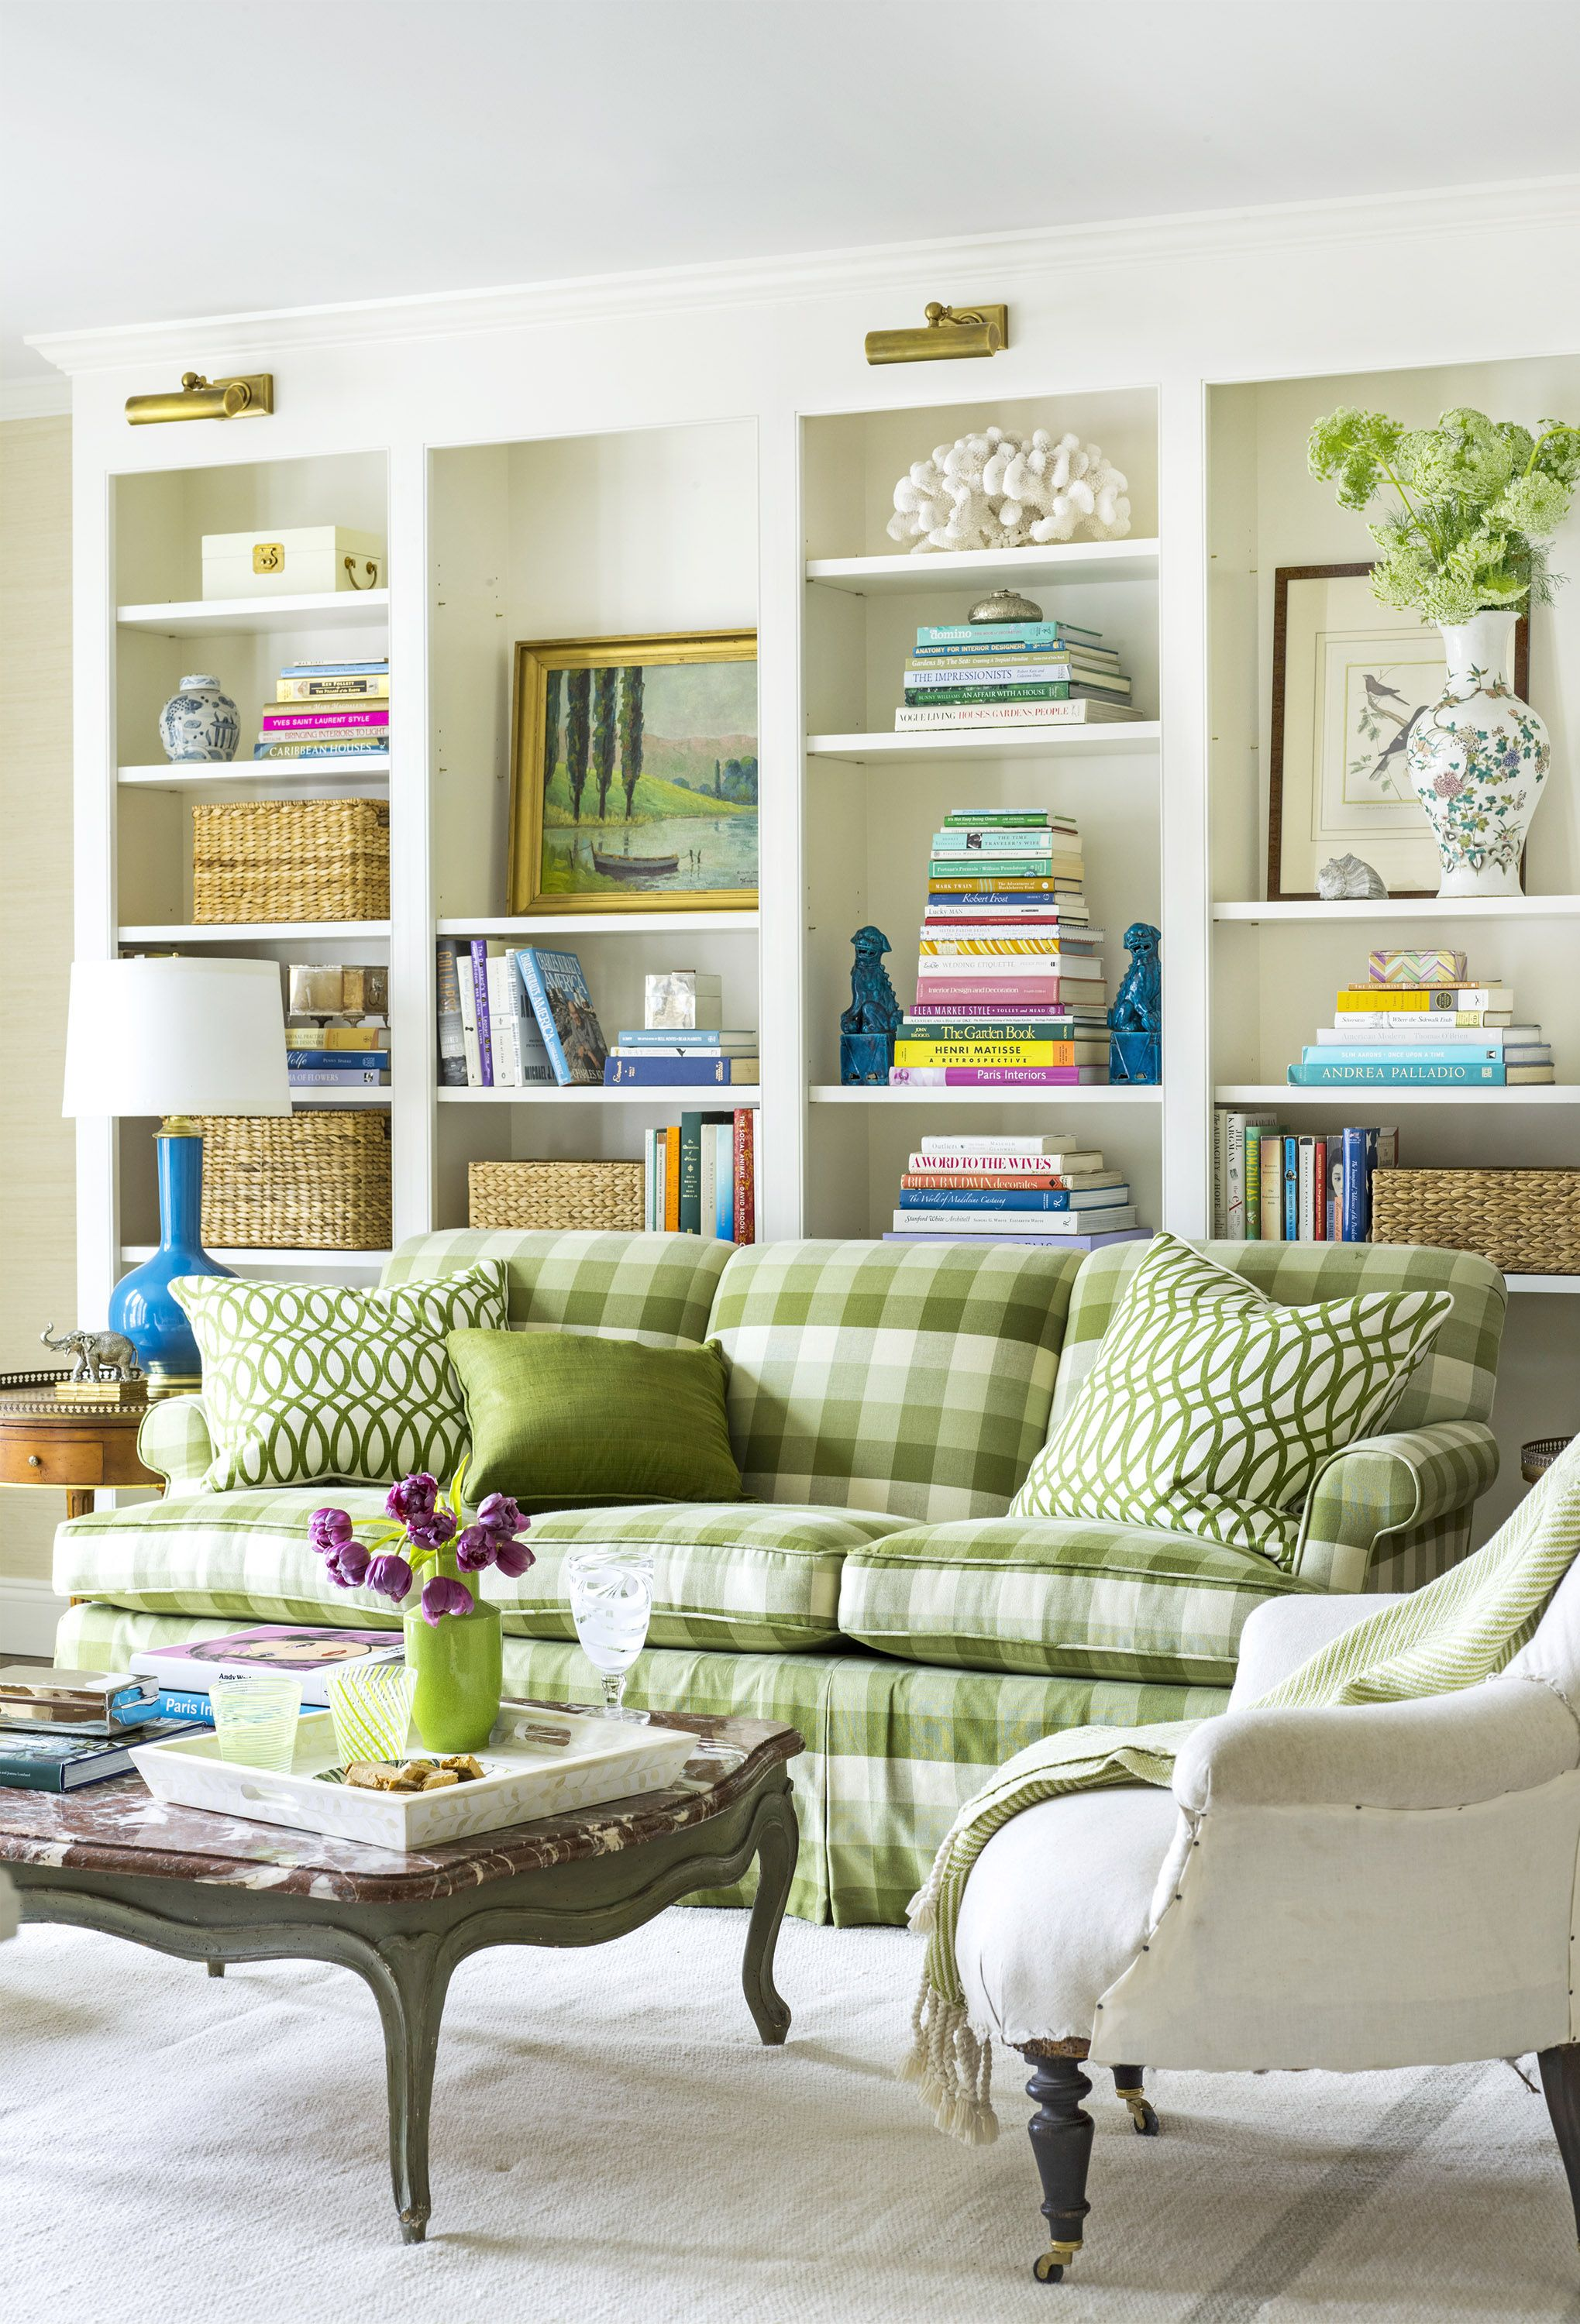 Decorating with Green - 43 Ideas for Green Rooms and Home Decor